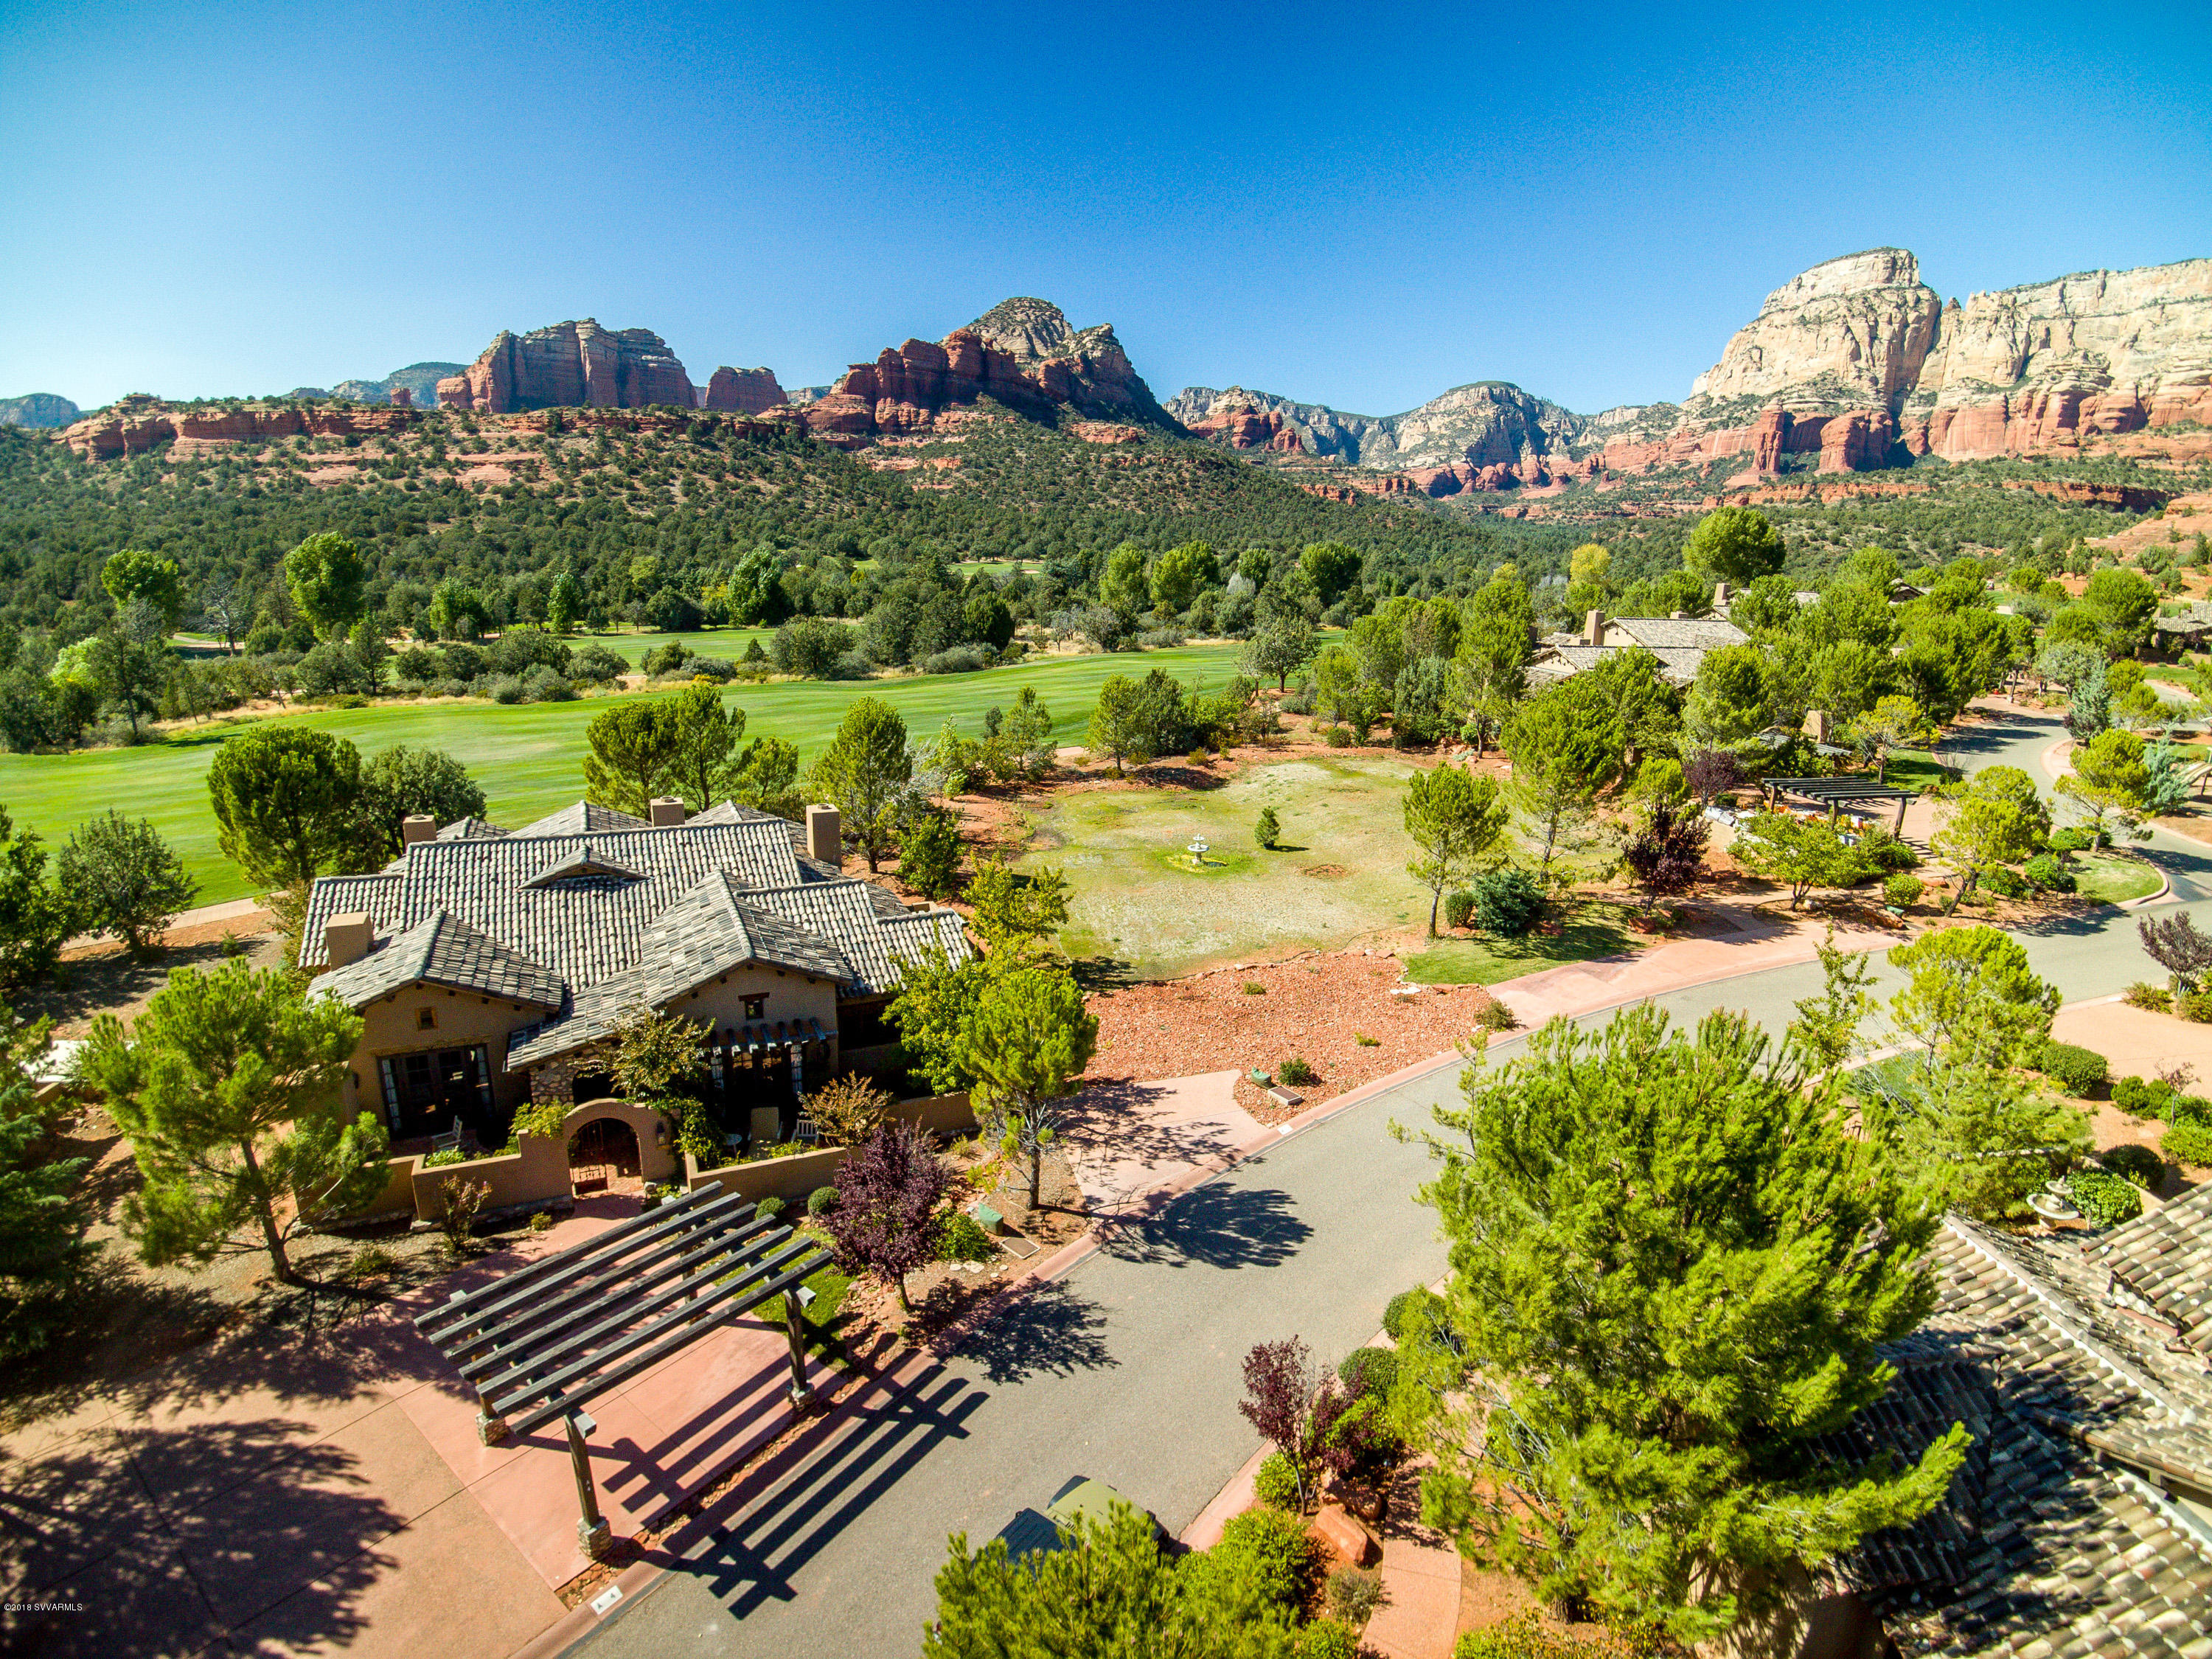 145 Secret Canyon Drive #A-5 Sedona, AZ 86336